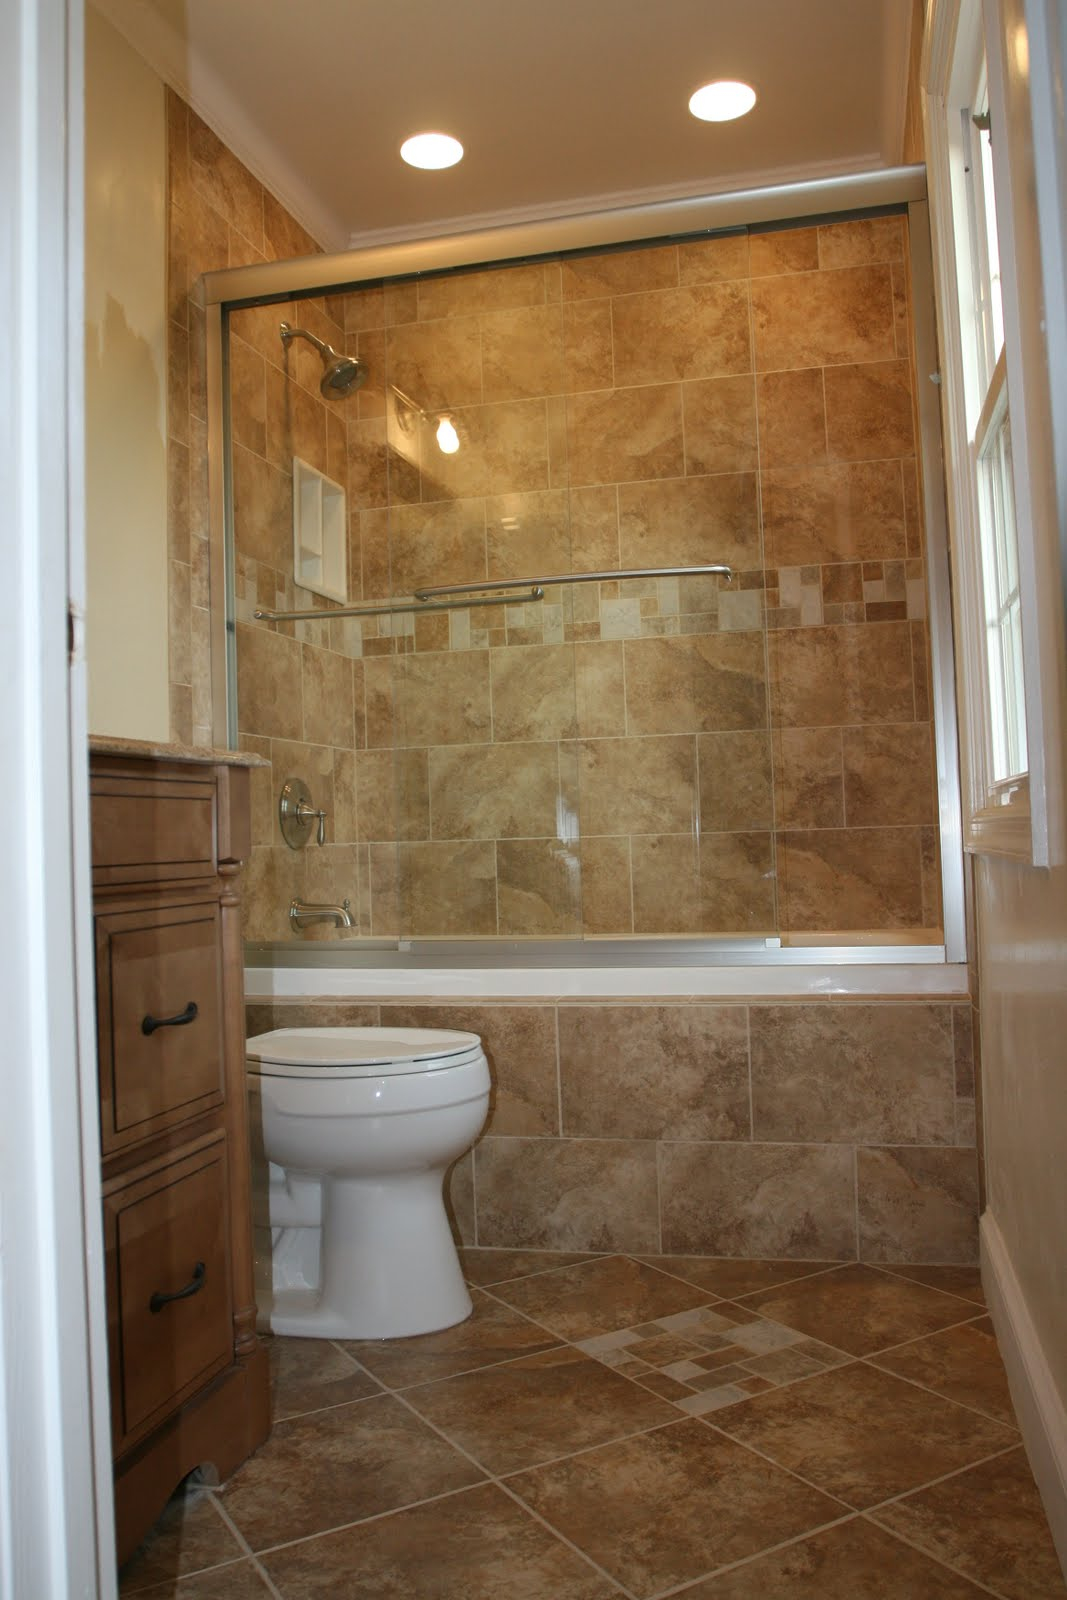 Bathroom Remodel Design Ideas Of Bathroom Remodeling Design Ideas Tile Shower Niches